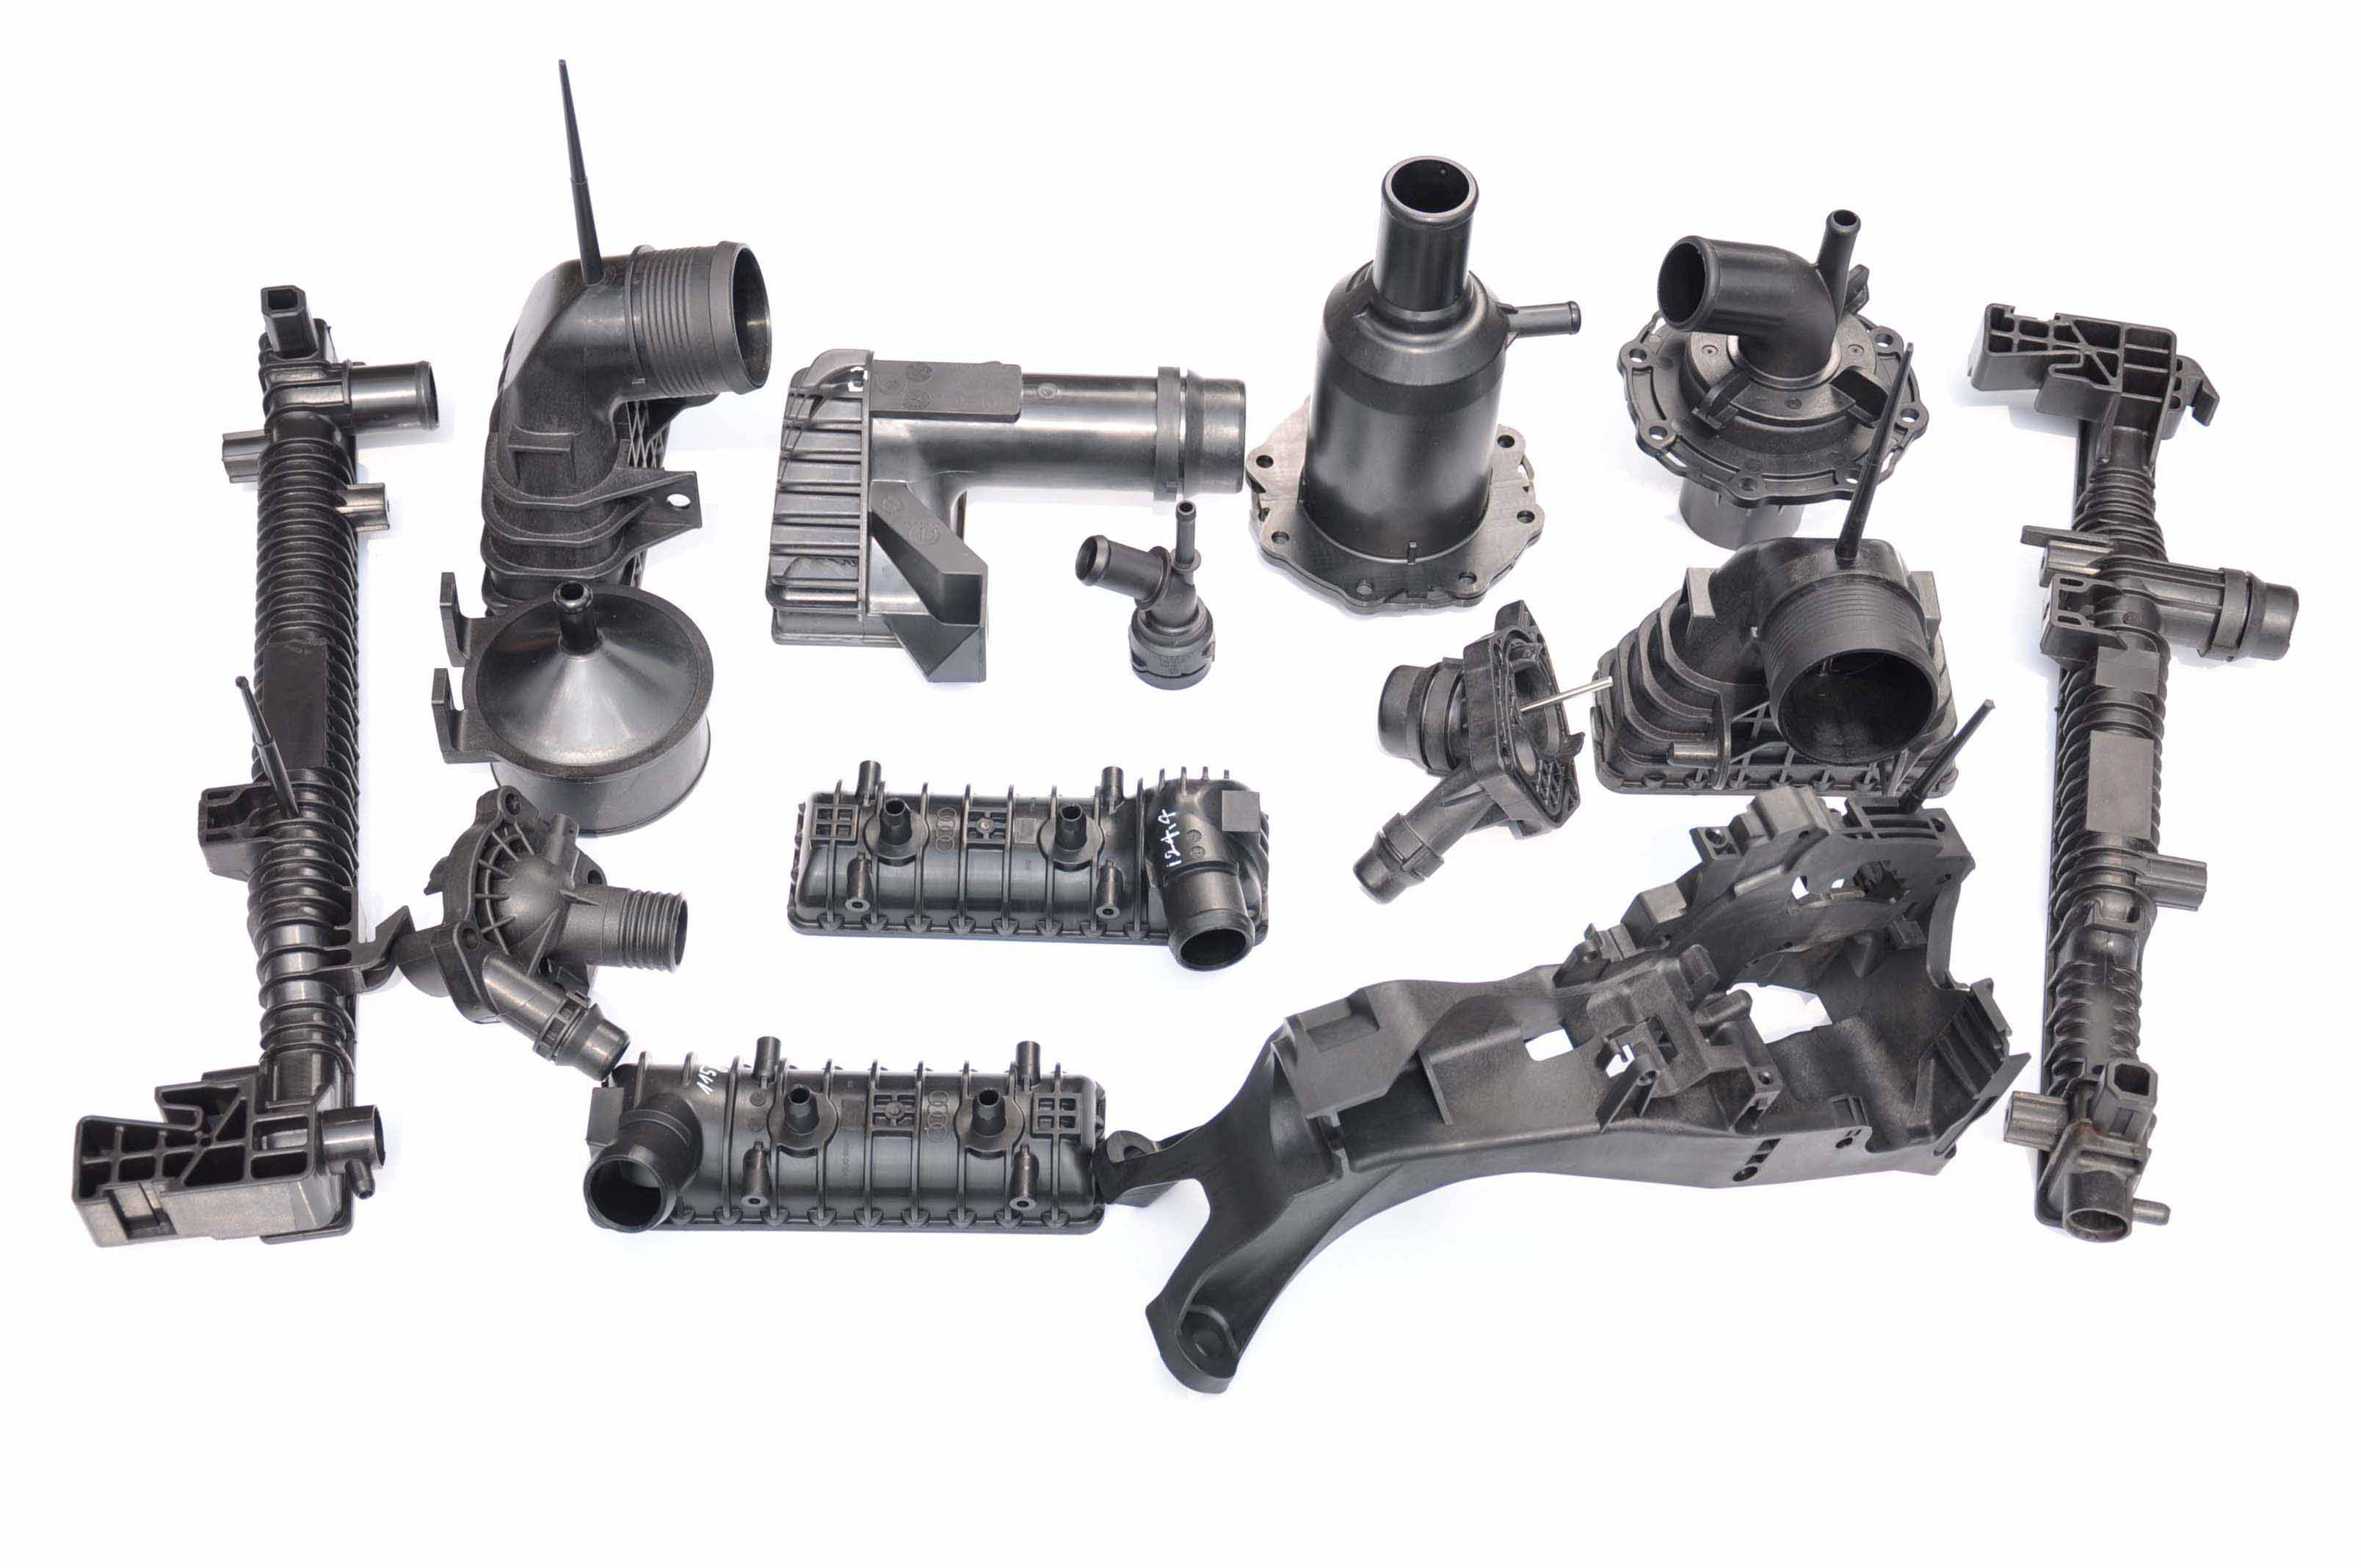 offer plastic injection molding service